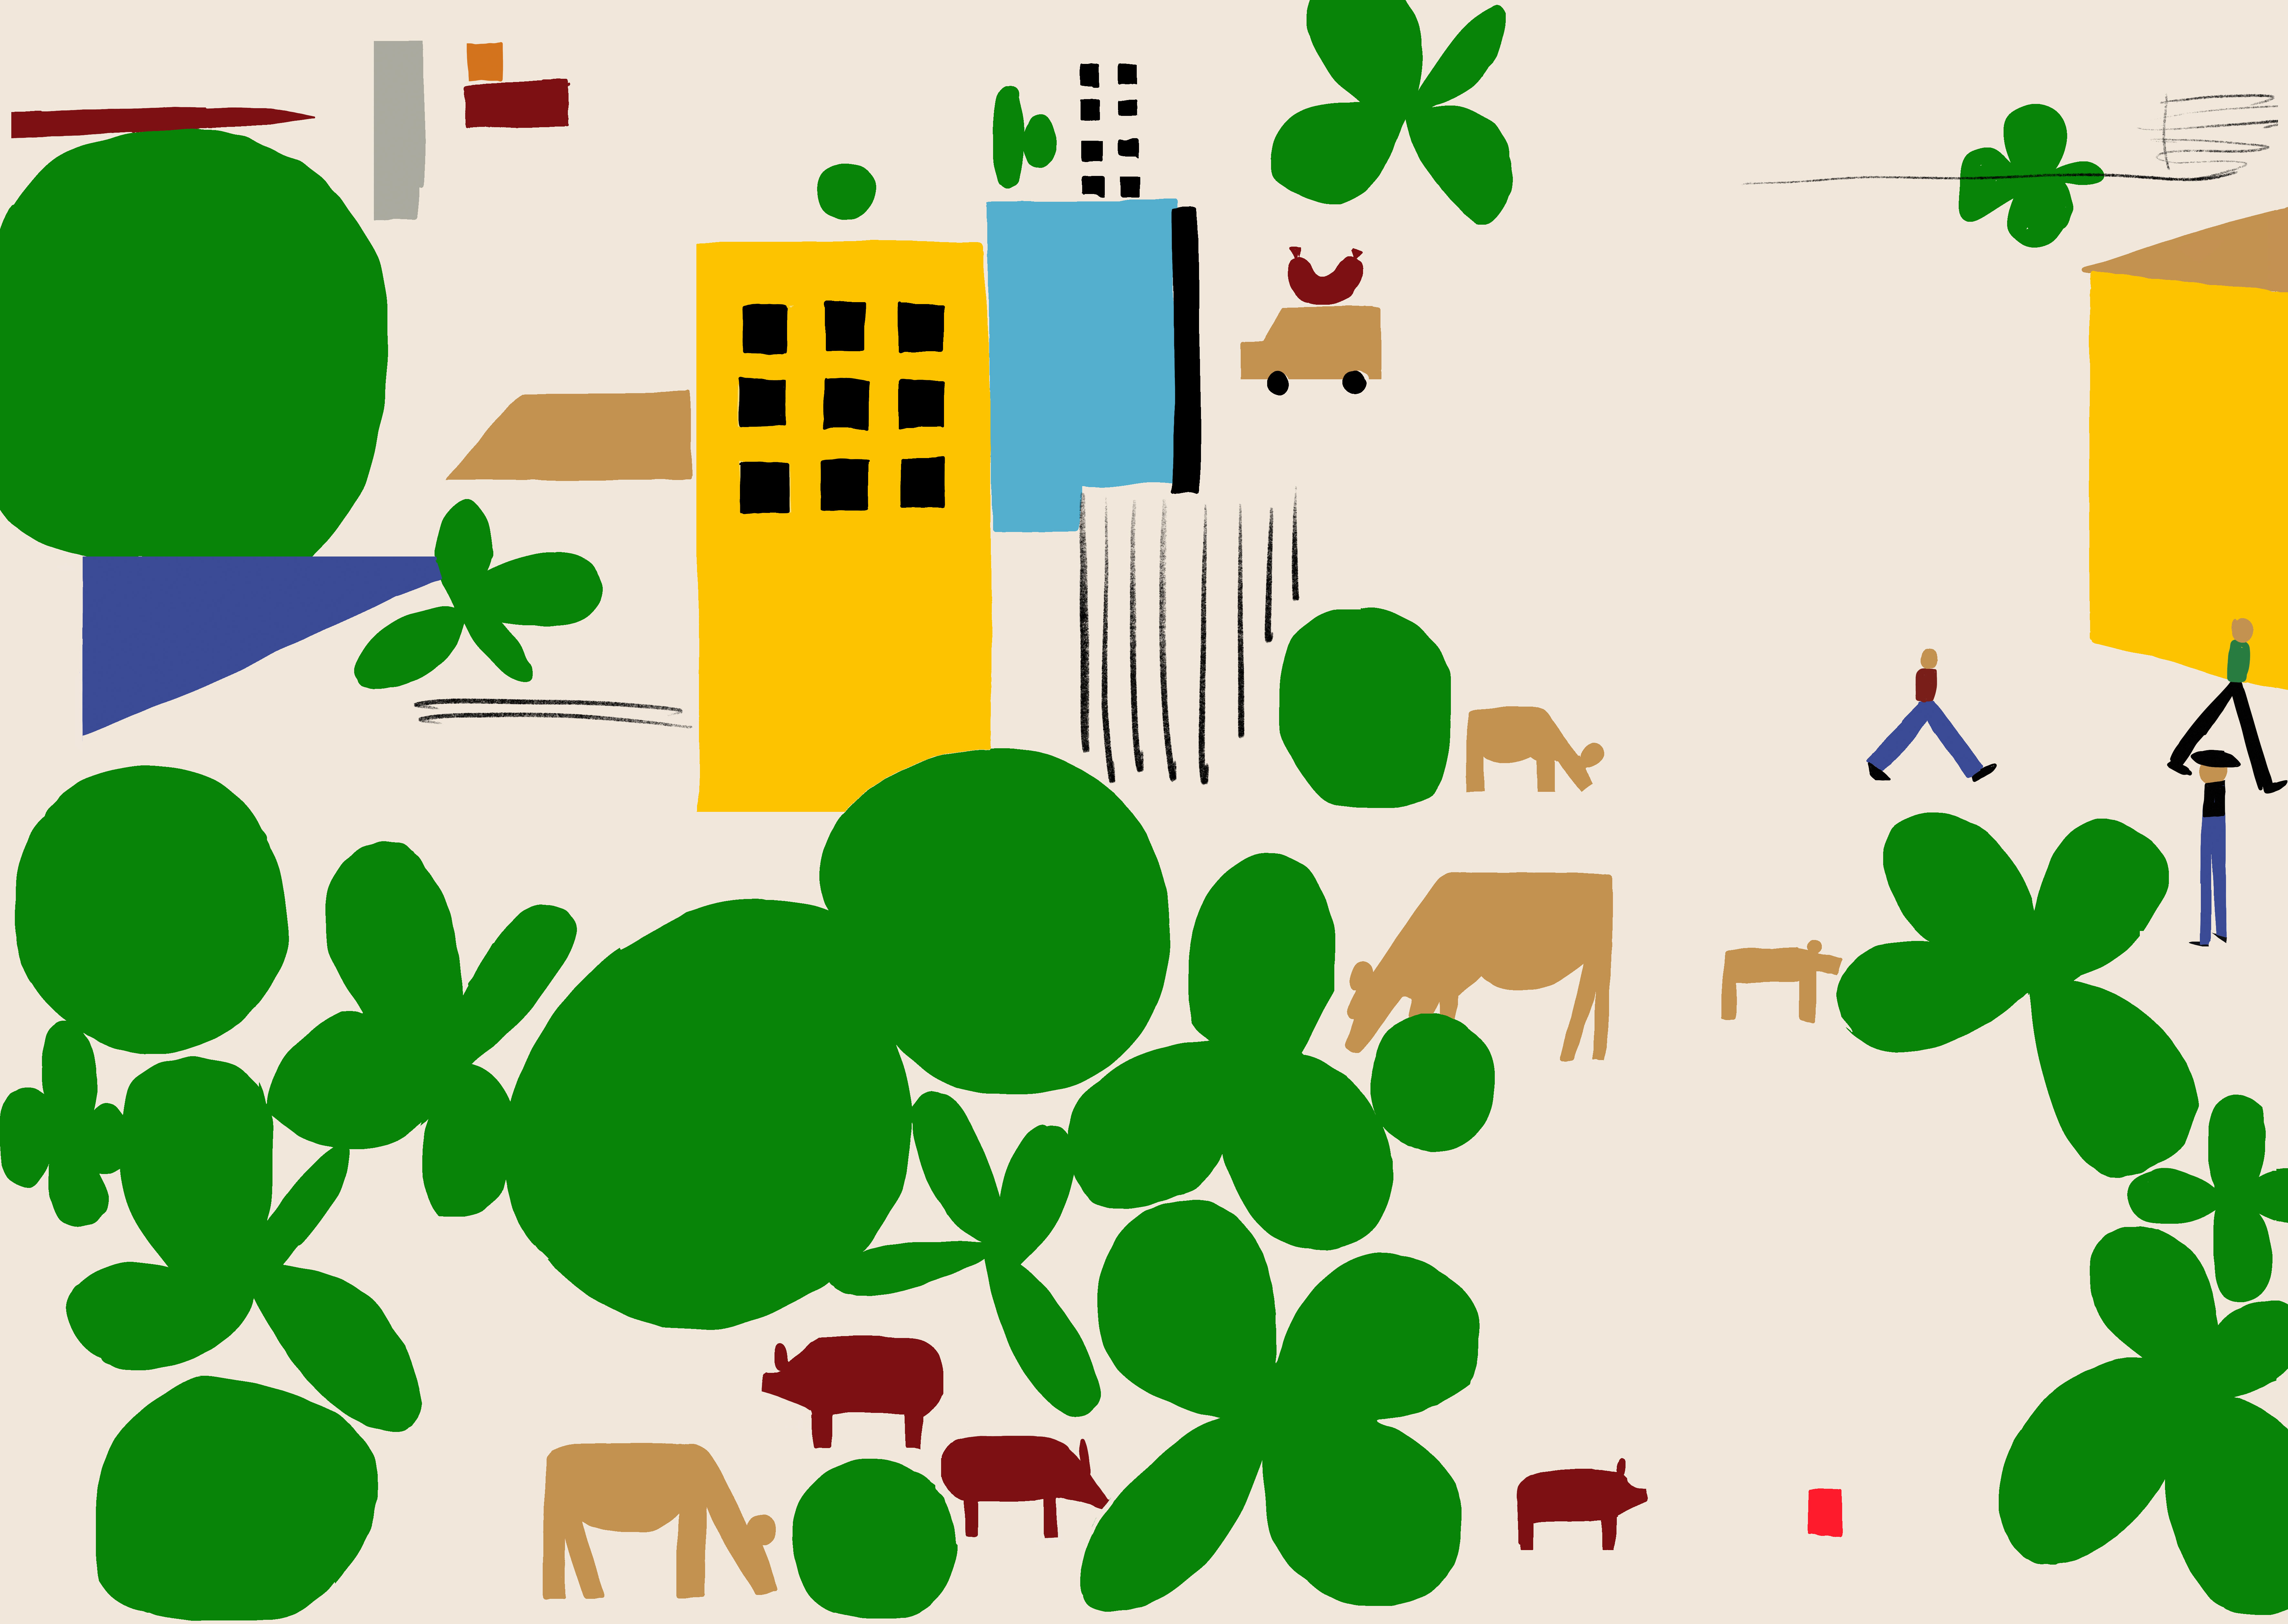 illustrative in different colours of trees, pigs, cows, houses and people